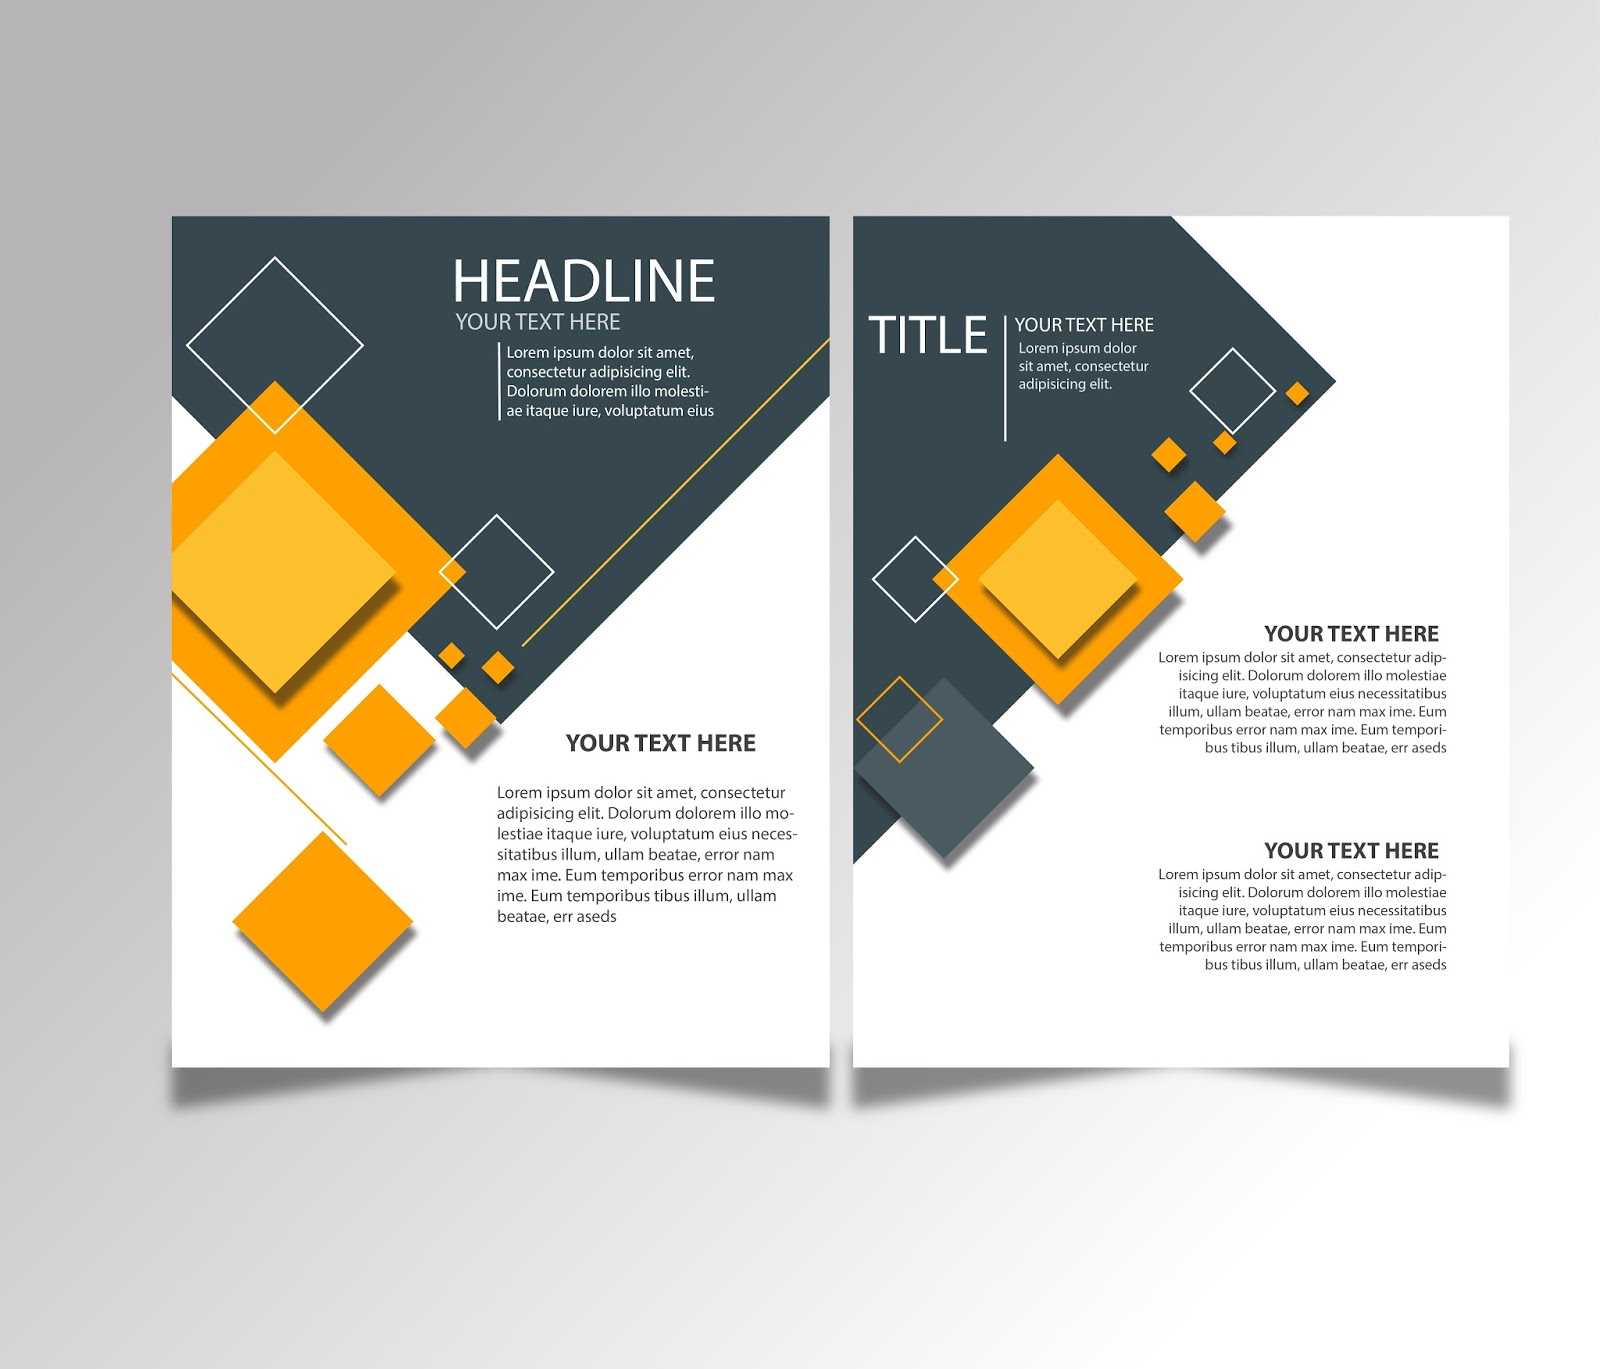 Free Download Brochure Design Templates Ai Files - Ideosprocess Throughout Adobe Illustrator Brochure Templates Free Download